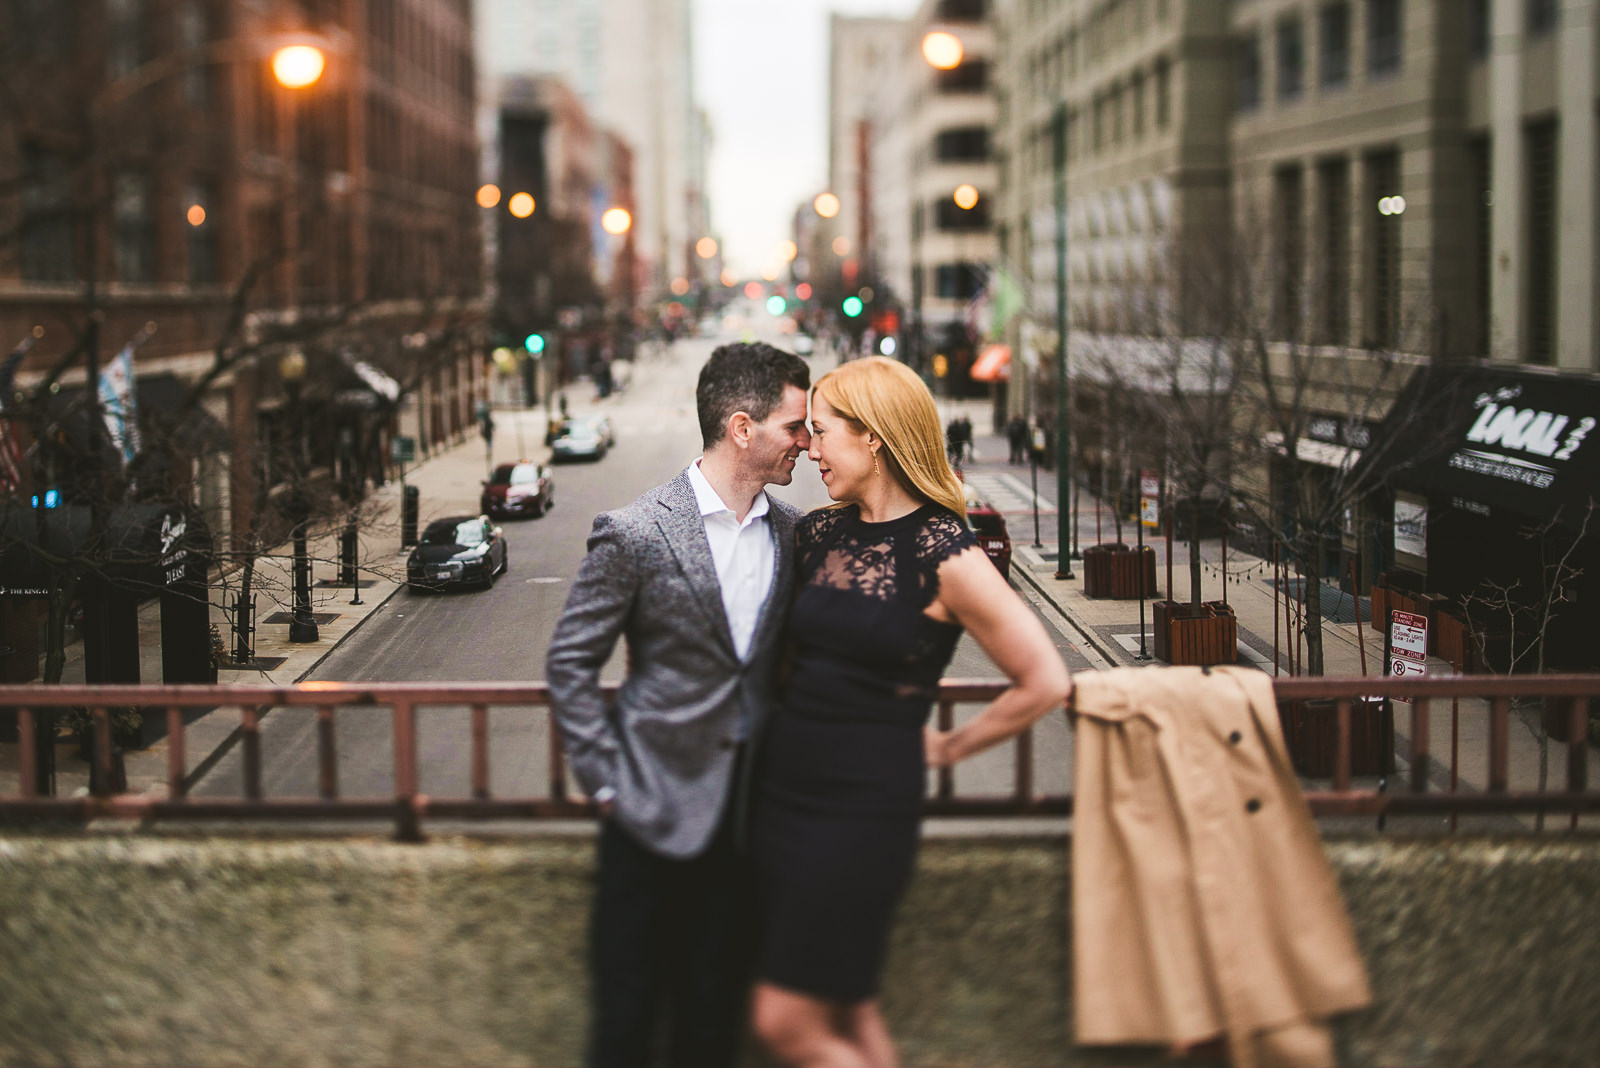 13 river north engagement photo inspiration - Megan + Bob // Chicago River North Engagement Session at Shaws Crab House